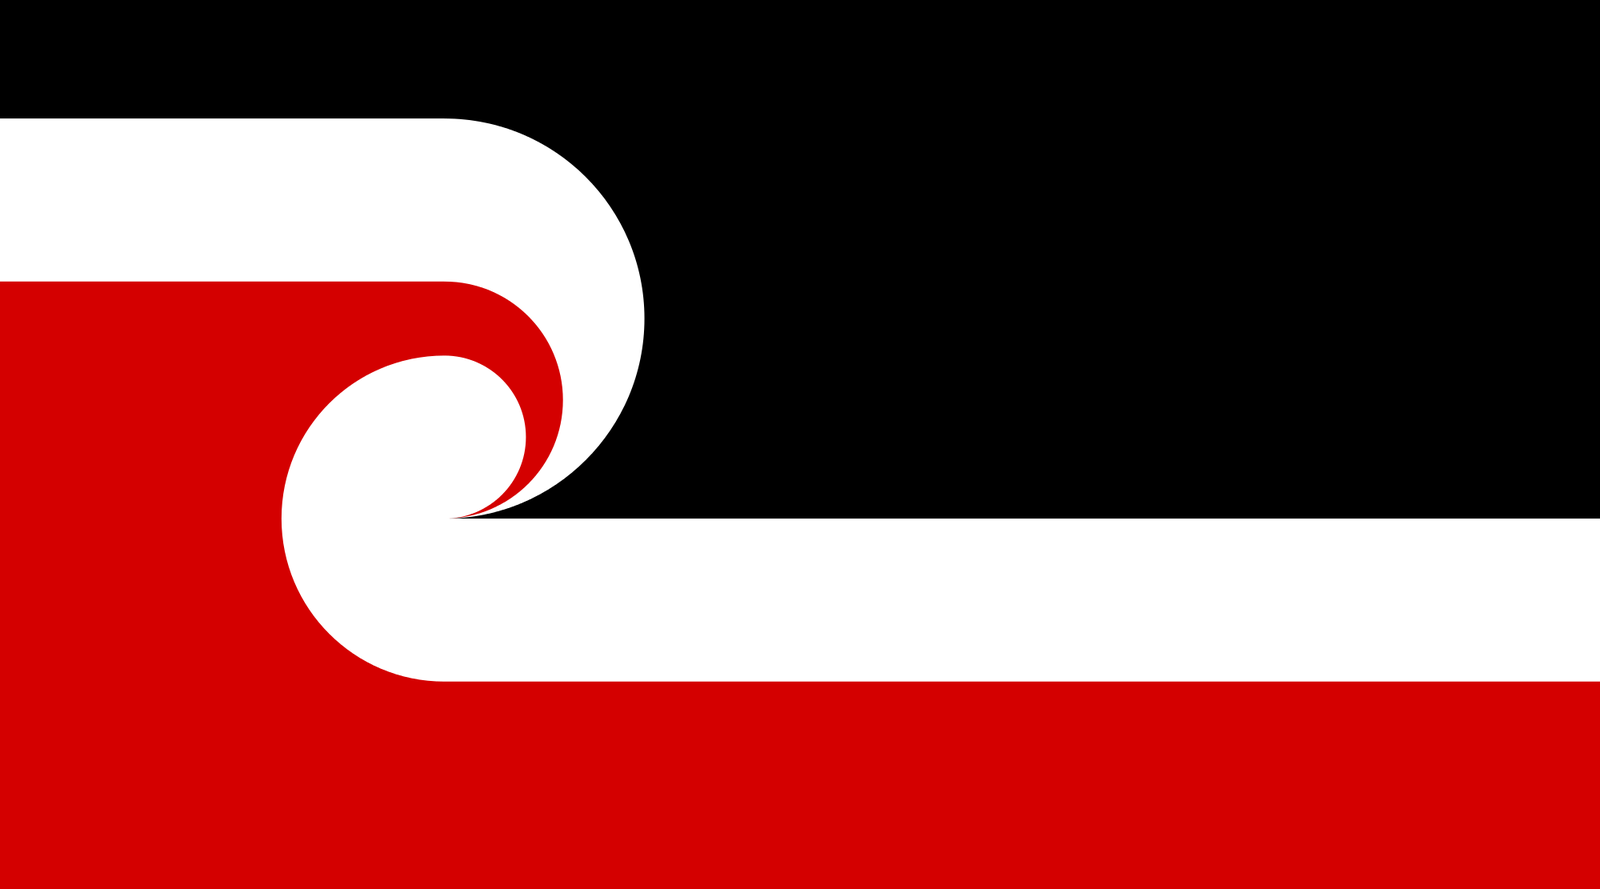 The national Māori flag